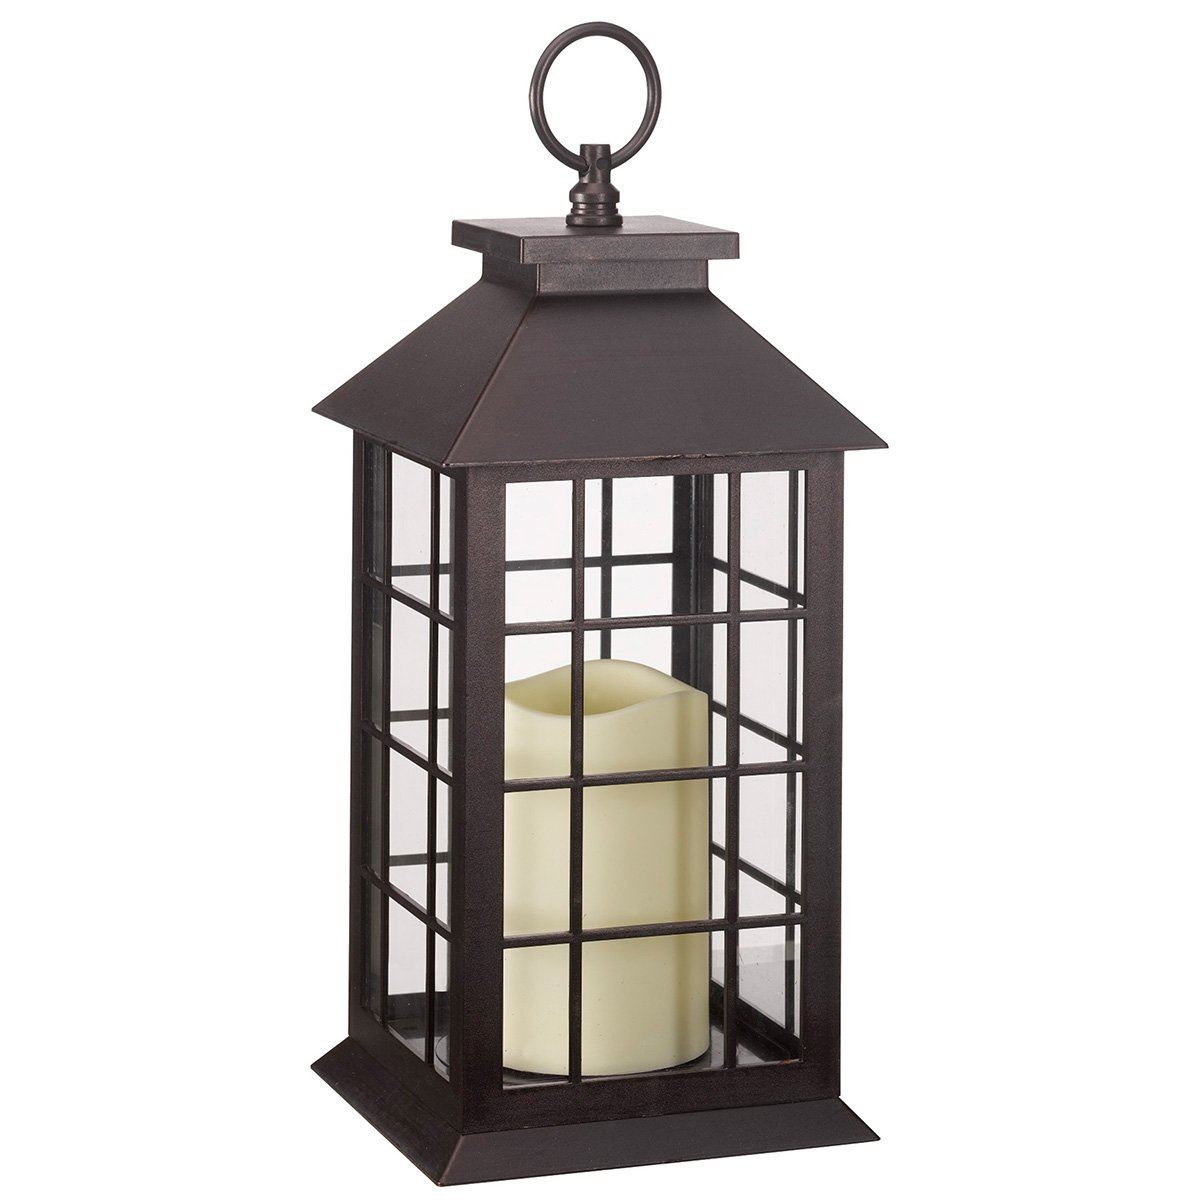 Battery operated window candles with timer - Crazygadget Battery Operated Window Lantern With Timer Amp